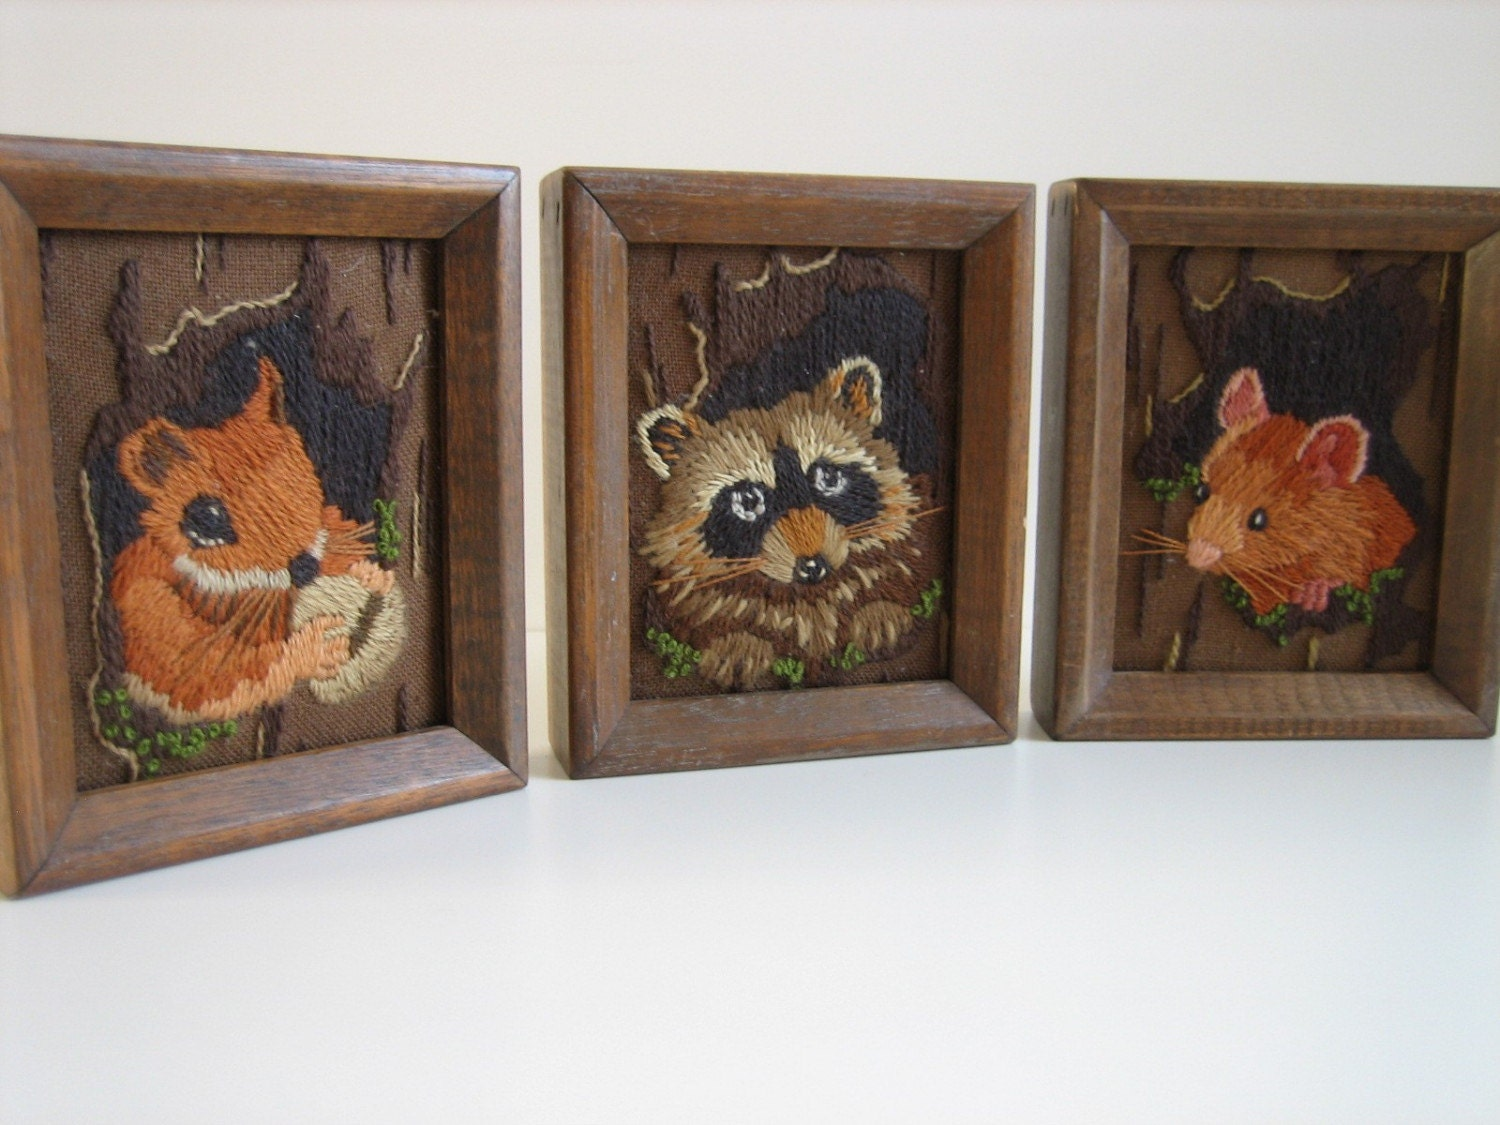 Set of 3 Small Framed Crewel Work of Mouse, Racoon, and Squirrel